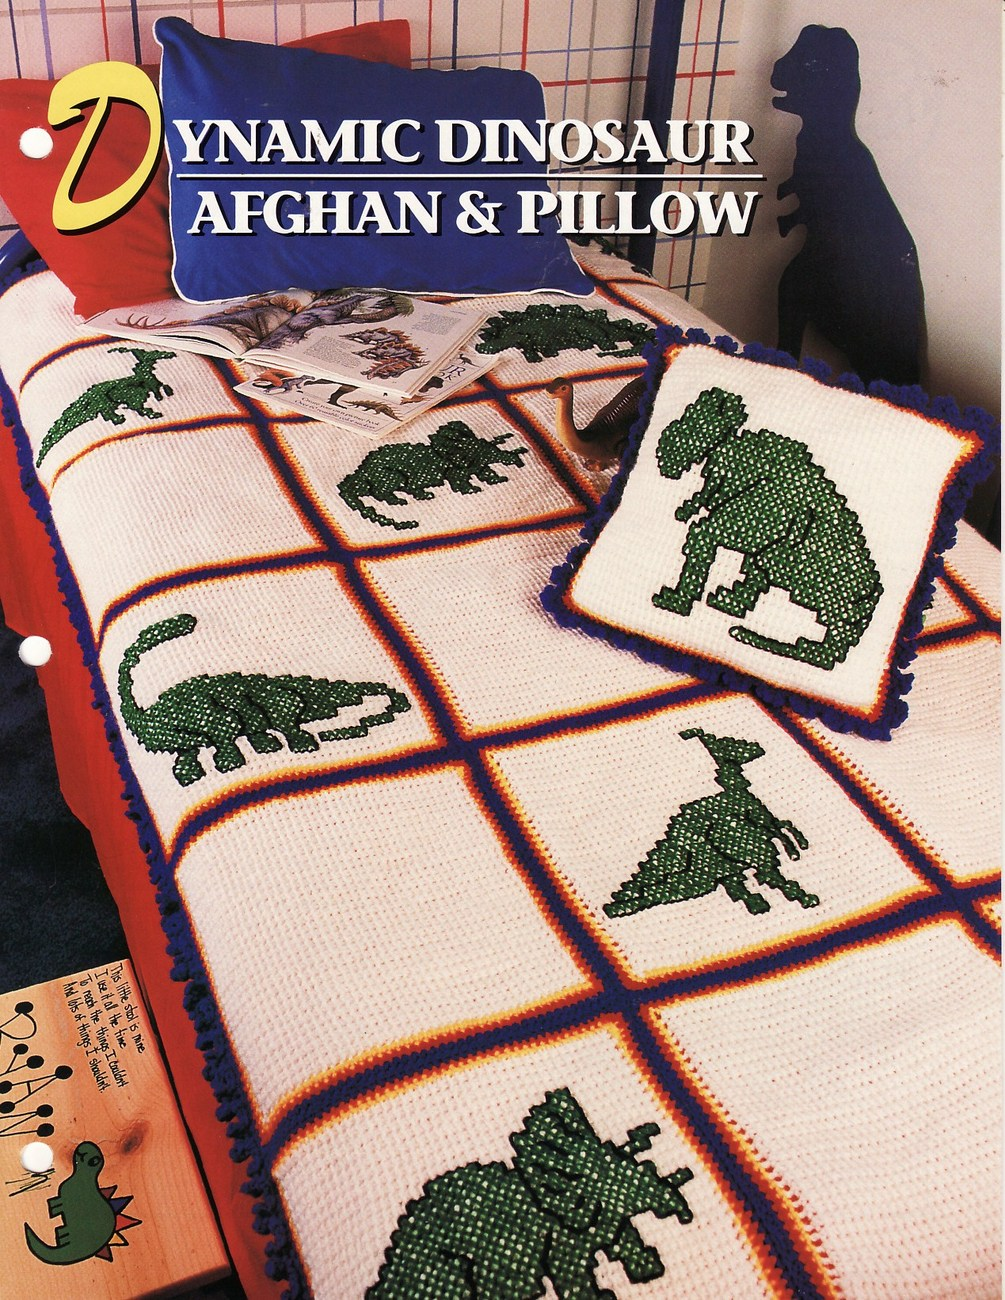 Dynamic Dinosaur Afghan & Pillow Crochet Pattern Annies Attic Cynthia Harris